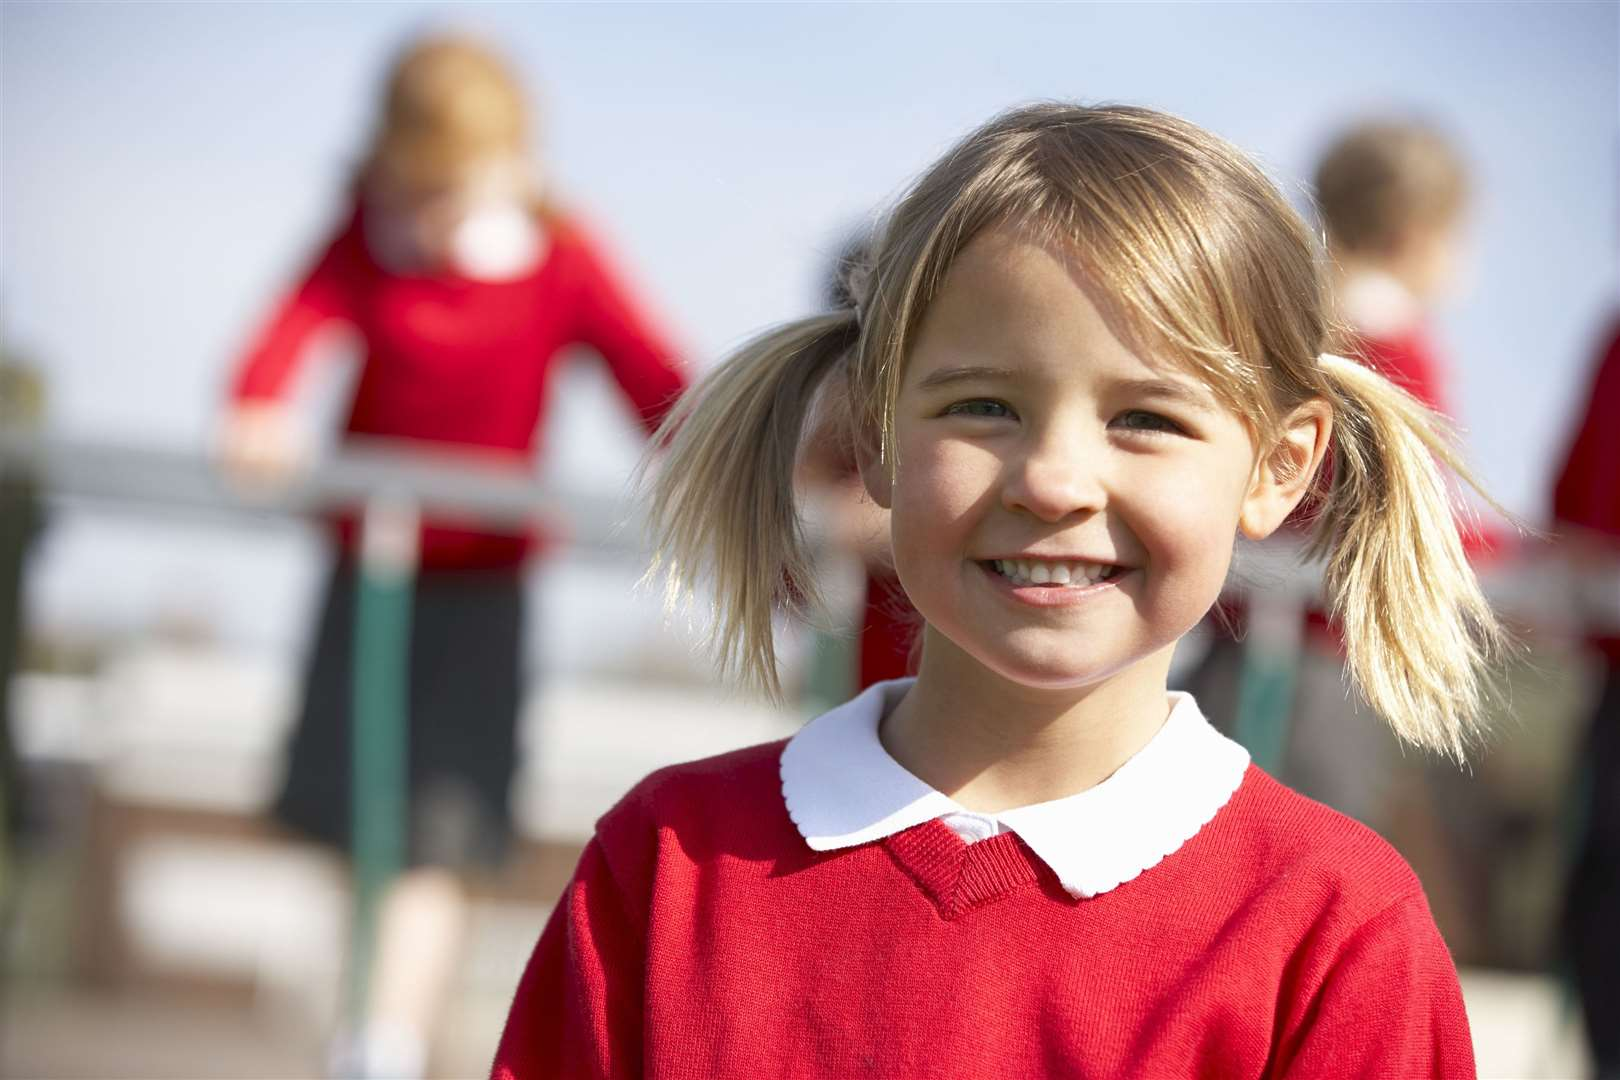 Social interaction is vital for pupils of all ages